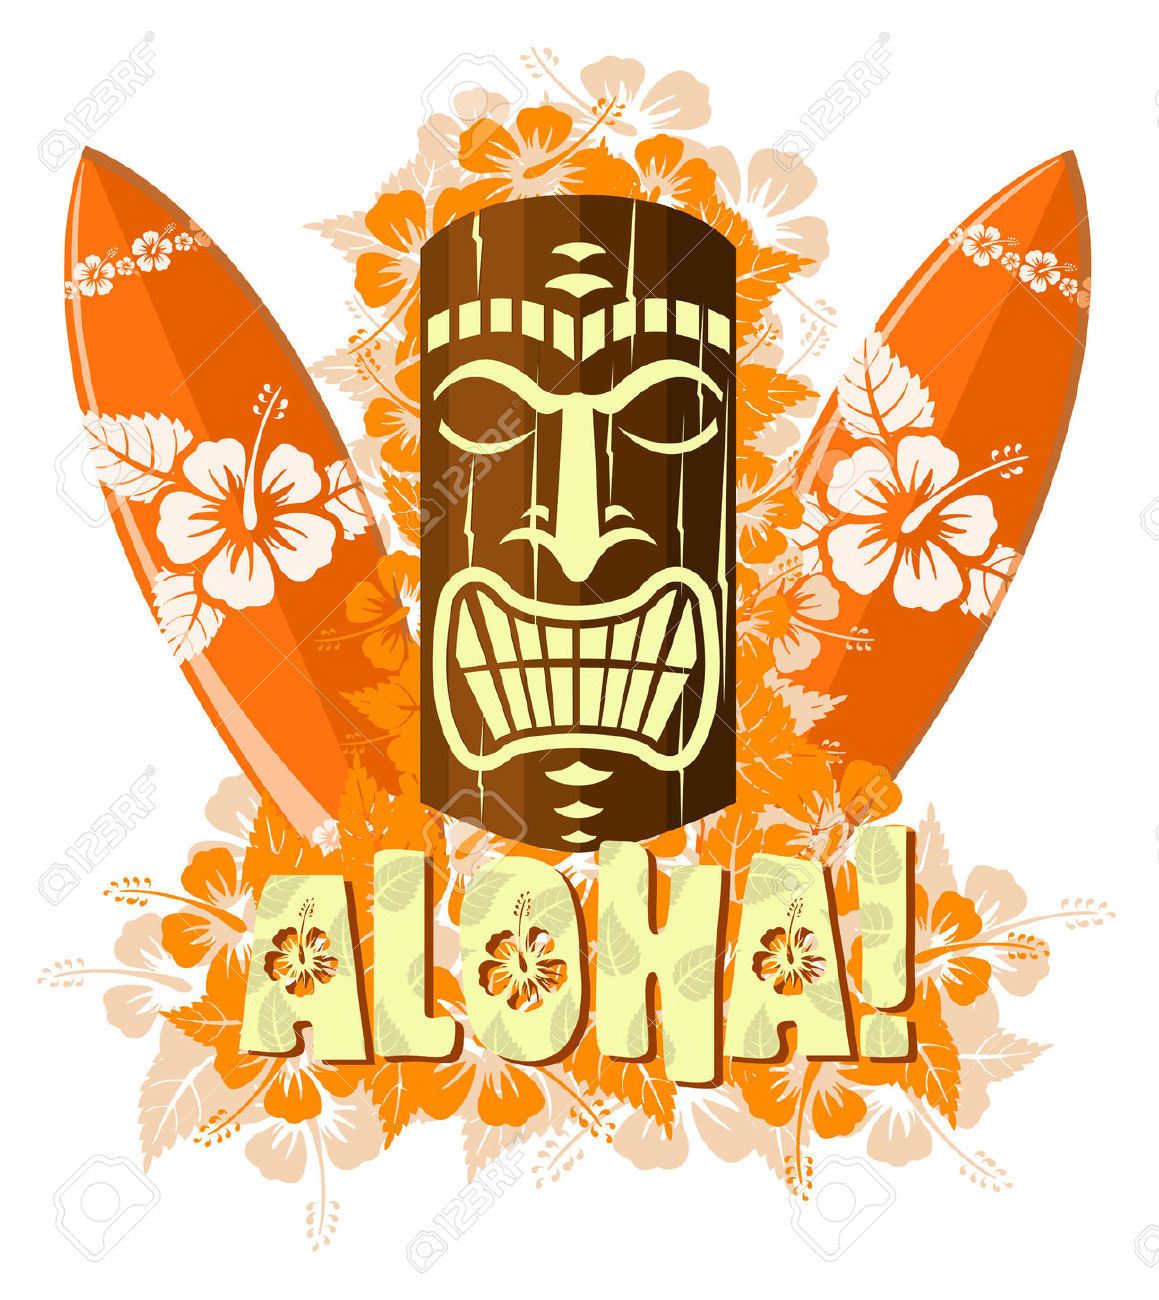 High Resolution Wallpaper | Aloha 1159x1300 px